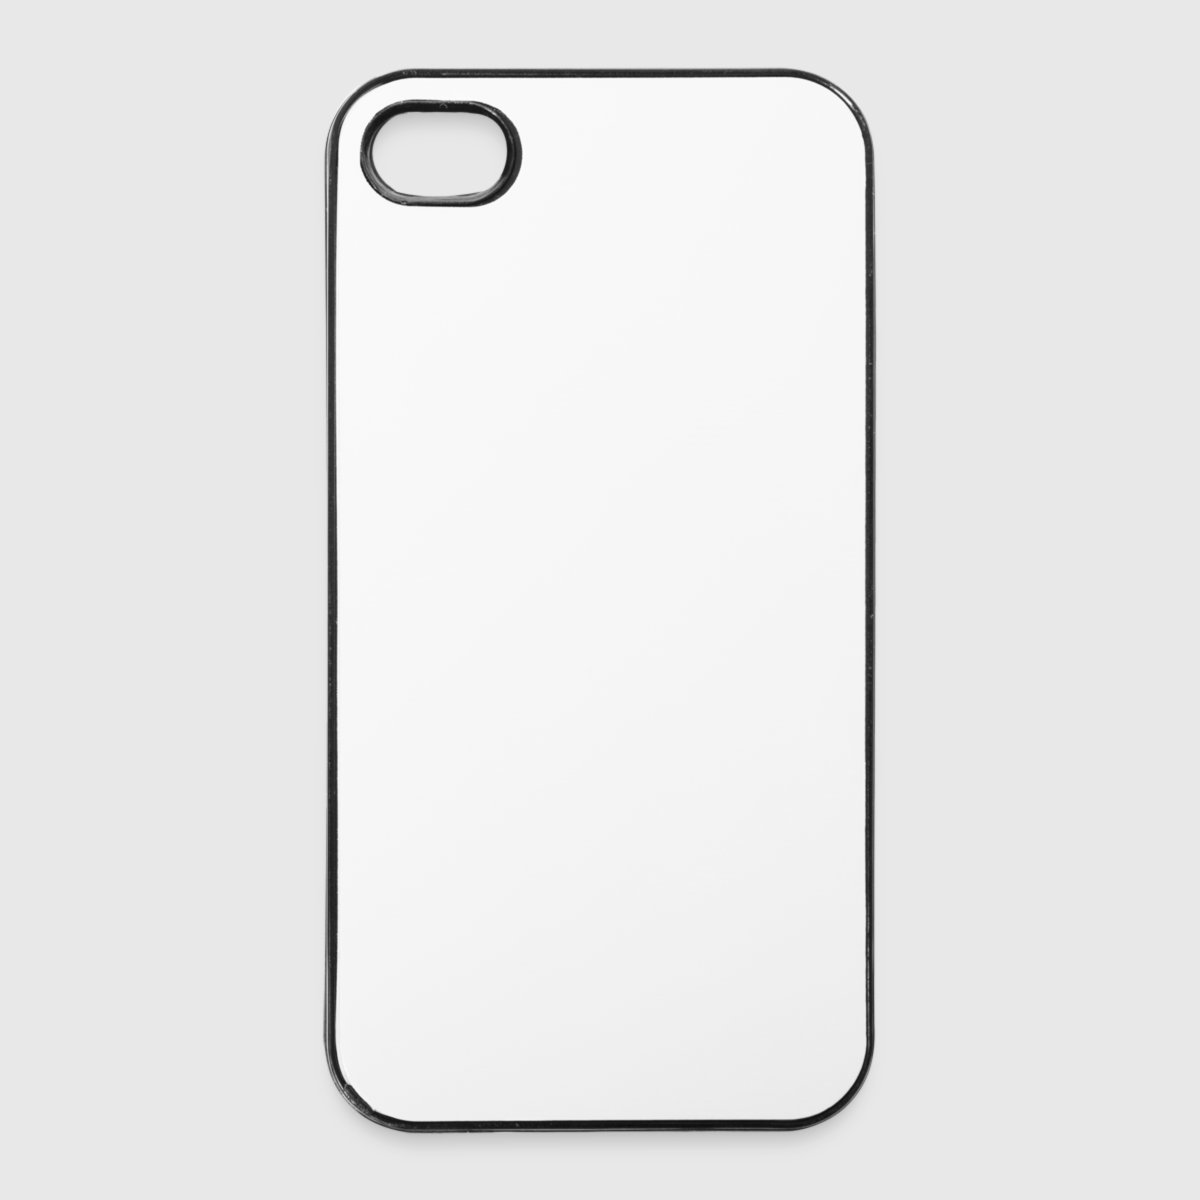 iPhone 4/4s Hard Case - Front